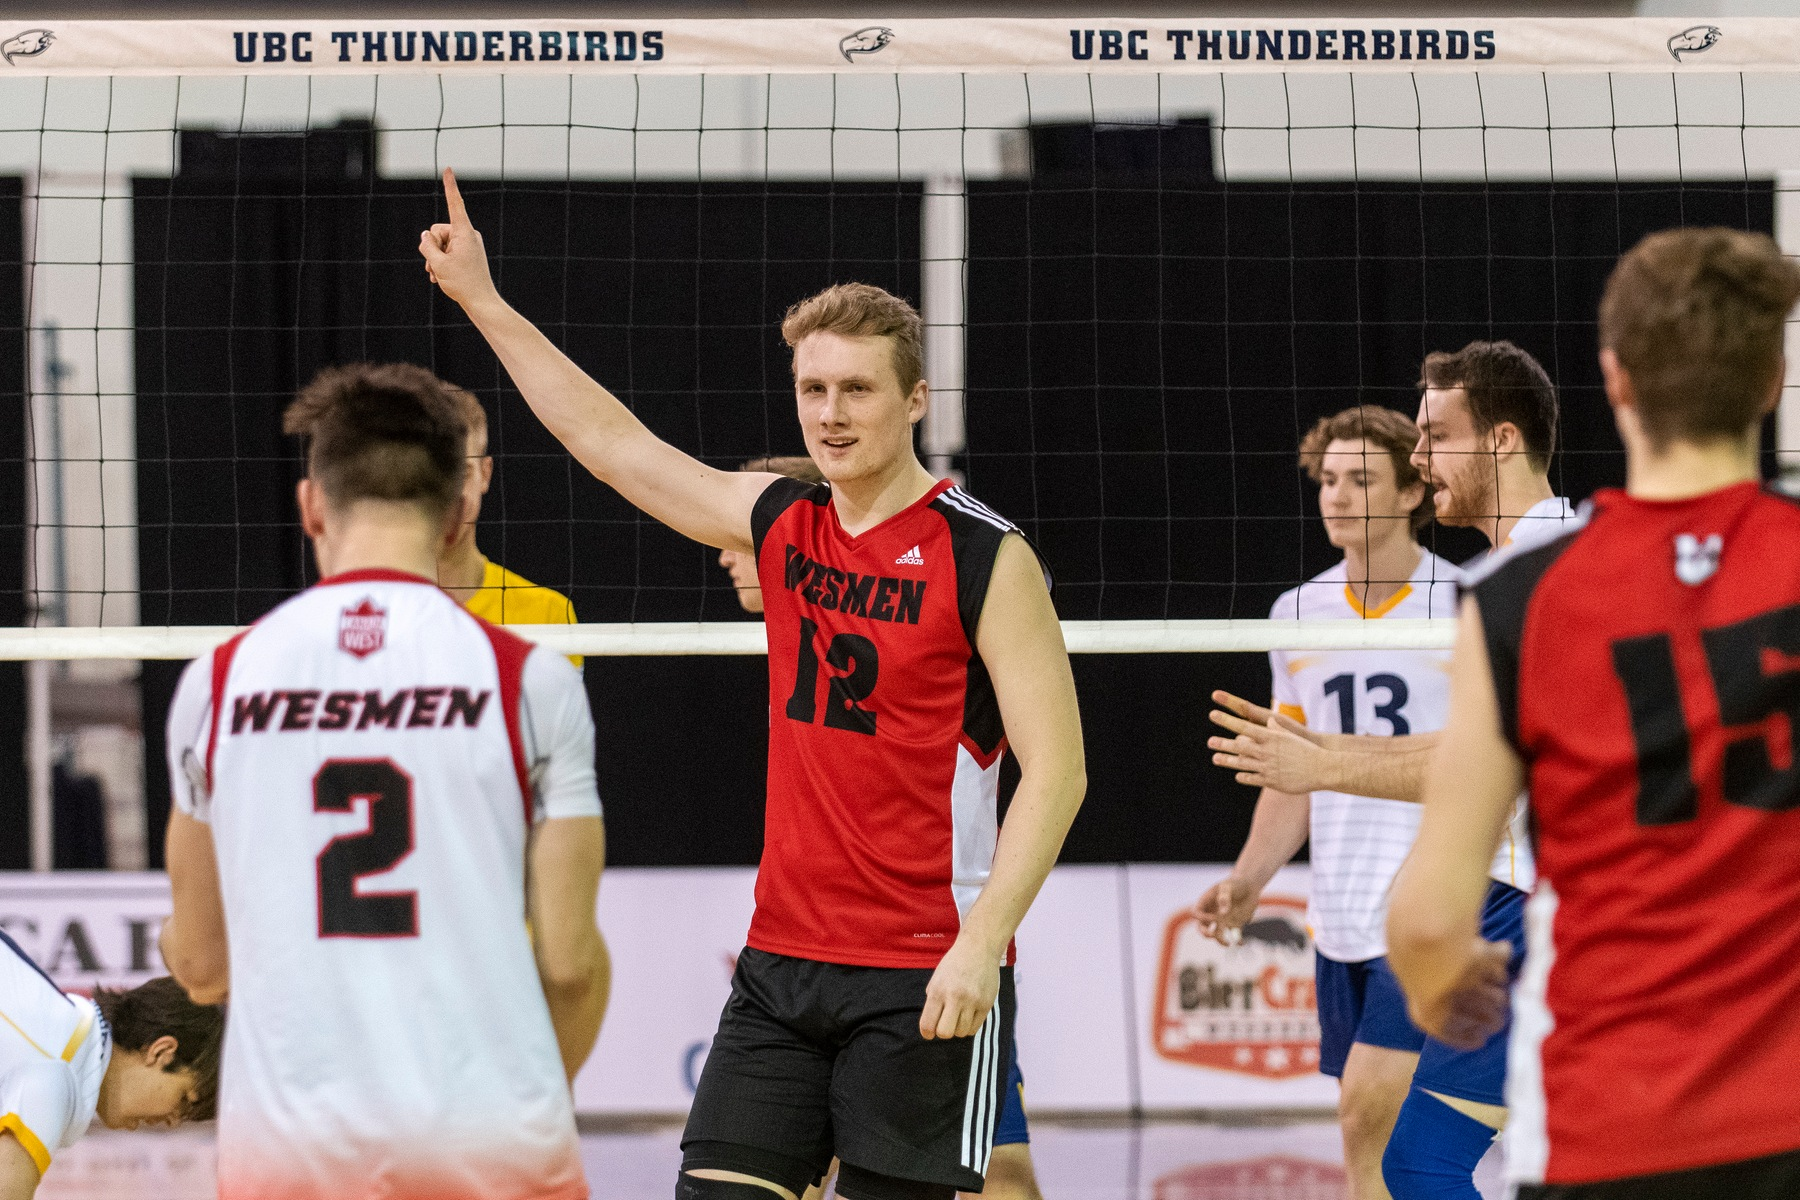 Wesmen can't hold lead in loss at UBC